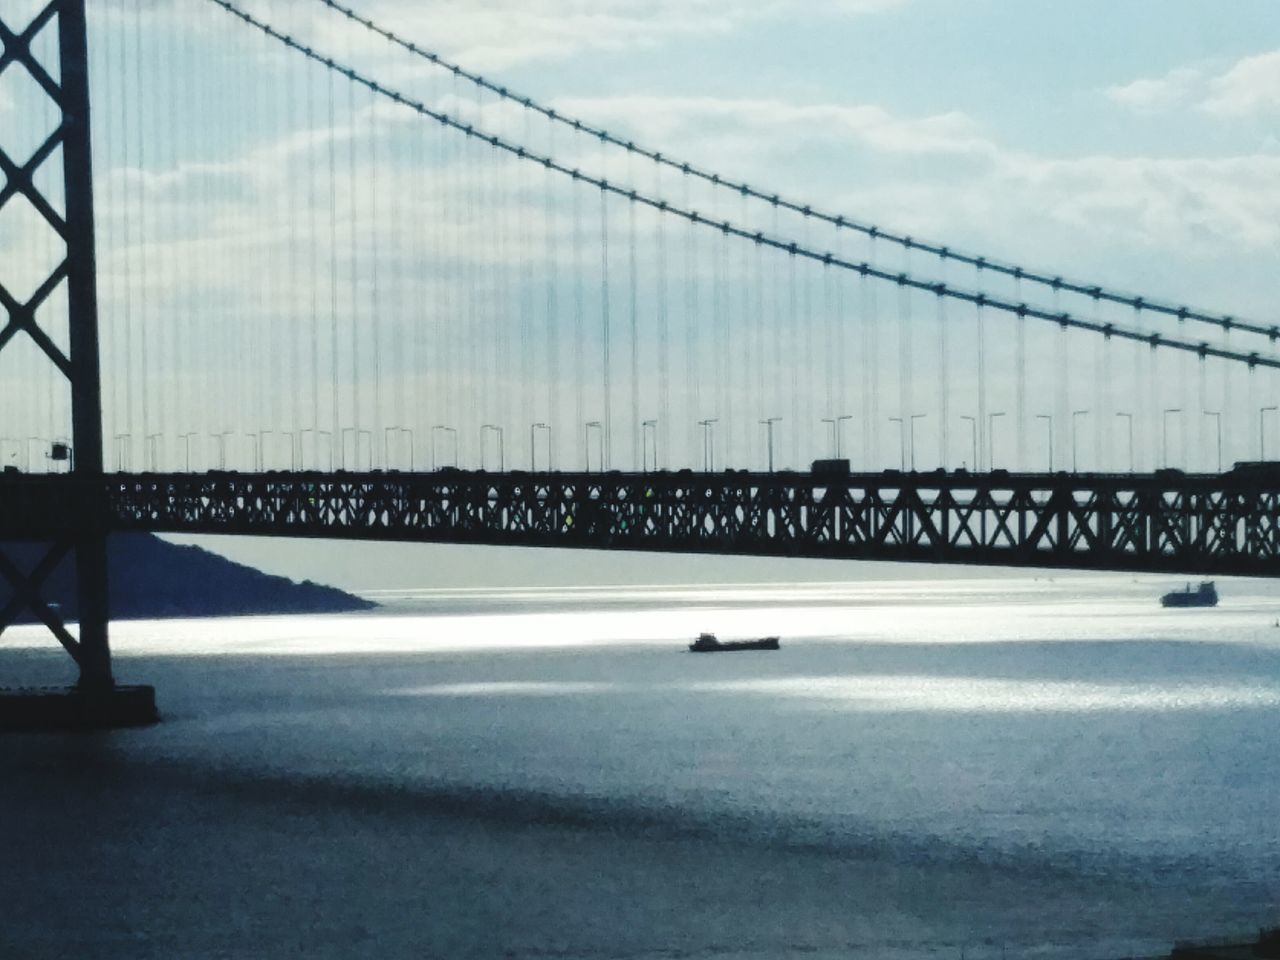 bridge - man made structure, sky, suspension bridge, sea, cloud - sky, connection, outdoors, bridge, architecture, day, no people, transportation, built structure, water, scenics, nature, horizon over water, beauty in nature